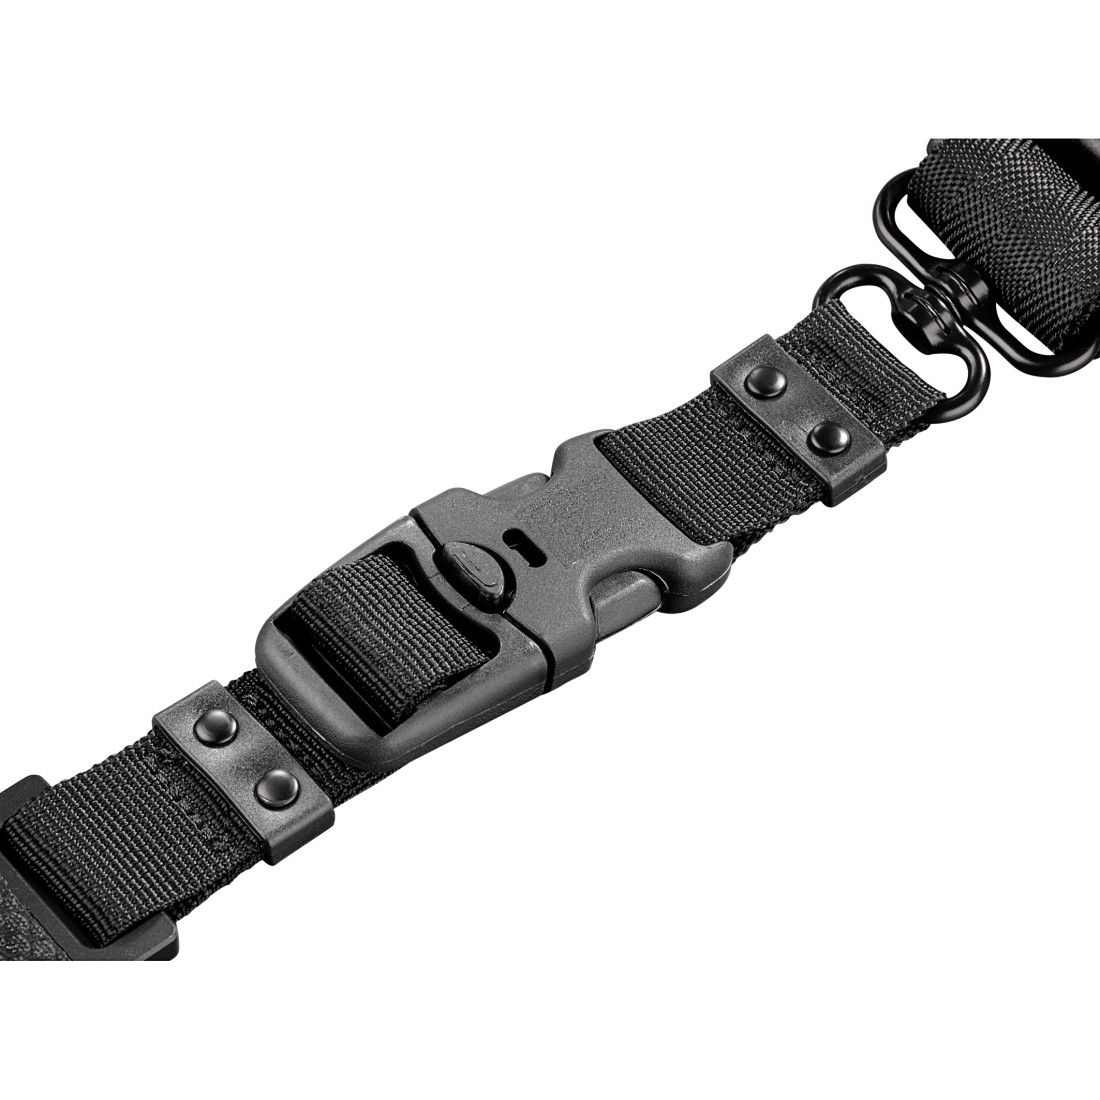 "dex5 High-Res Detail 5 - Hama, ""Quick Shoot Strap"" Carrying Strap for SLR Cameras"